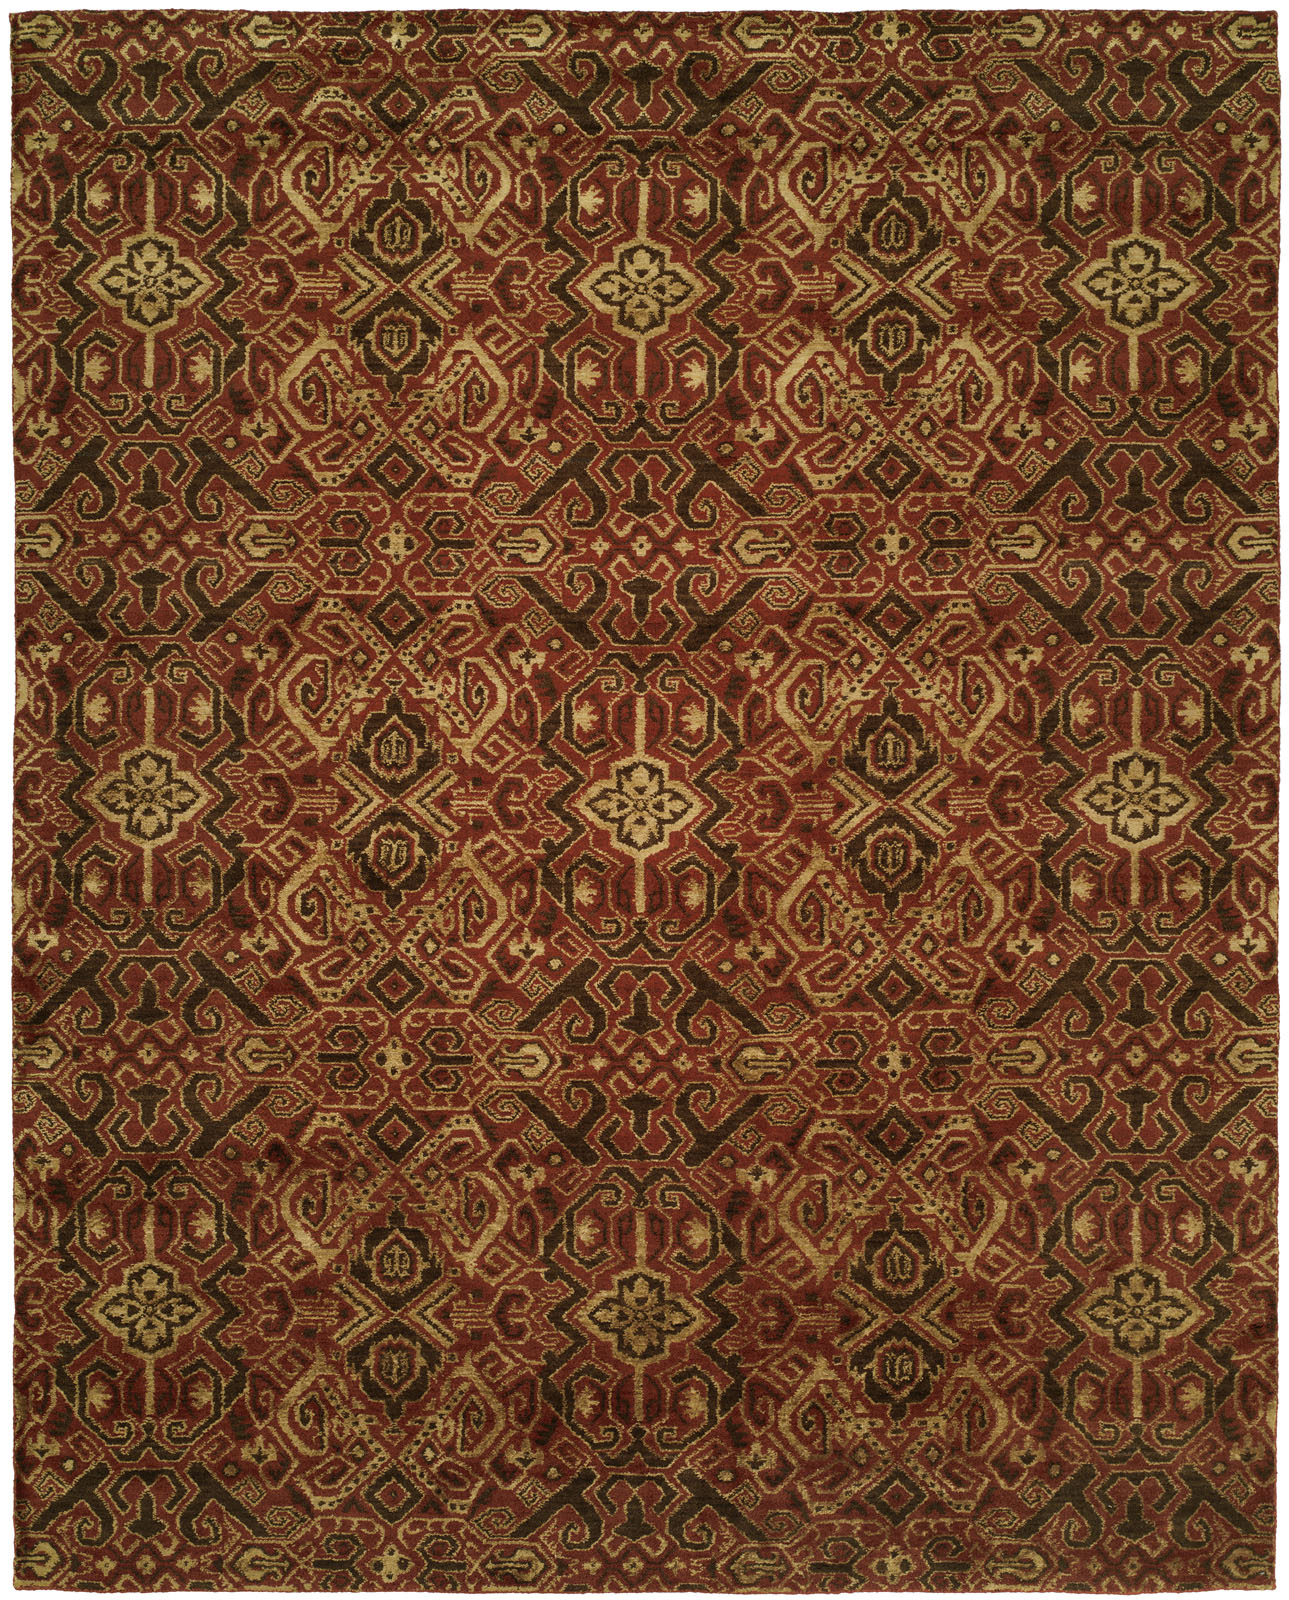 Gramercy Collection Gr 688 Alex Cooper Gallery Of Rugs